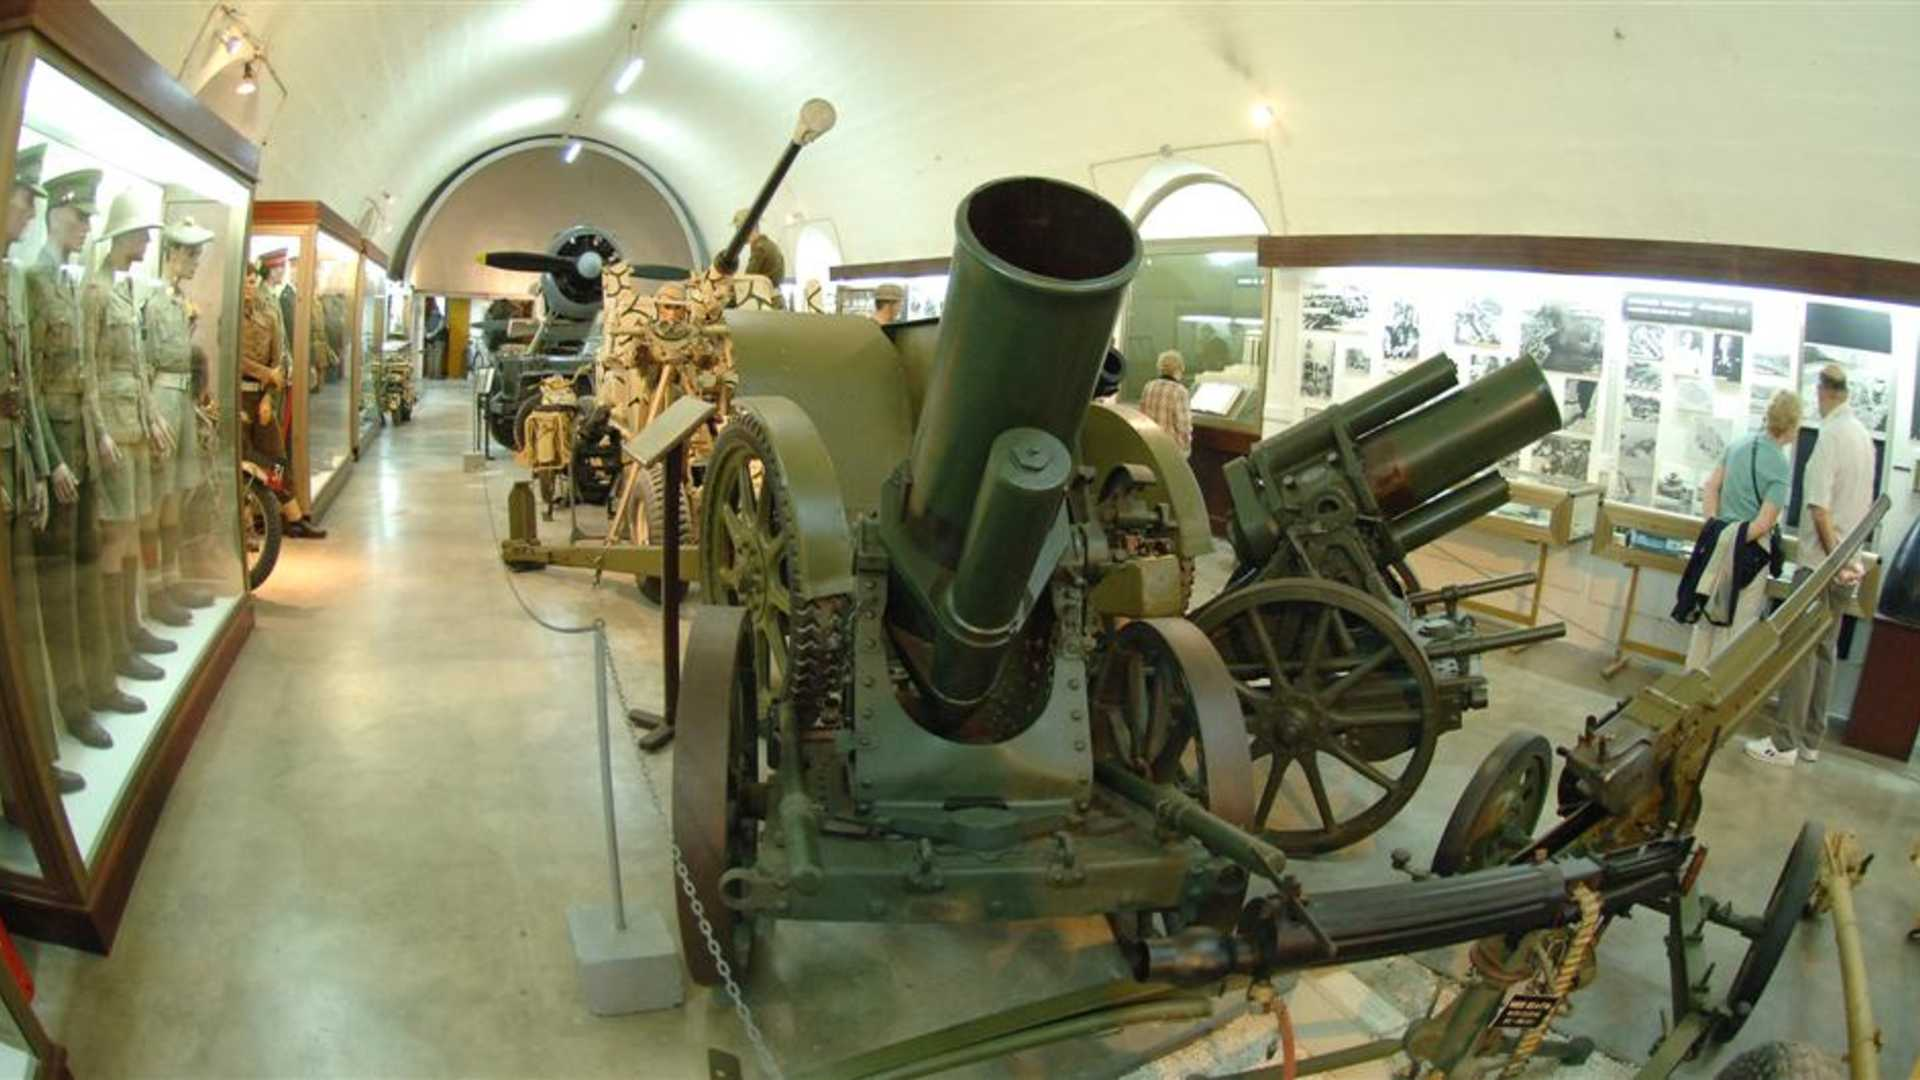 Malta at War Museum, Courve Porte, Vittoriosa